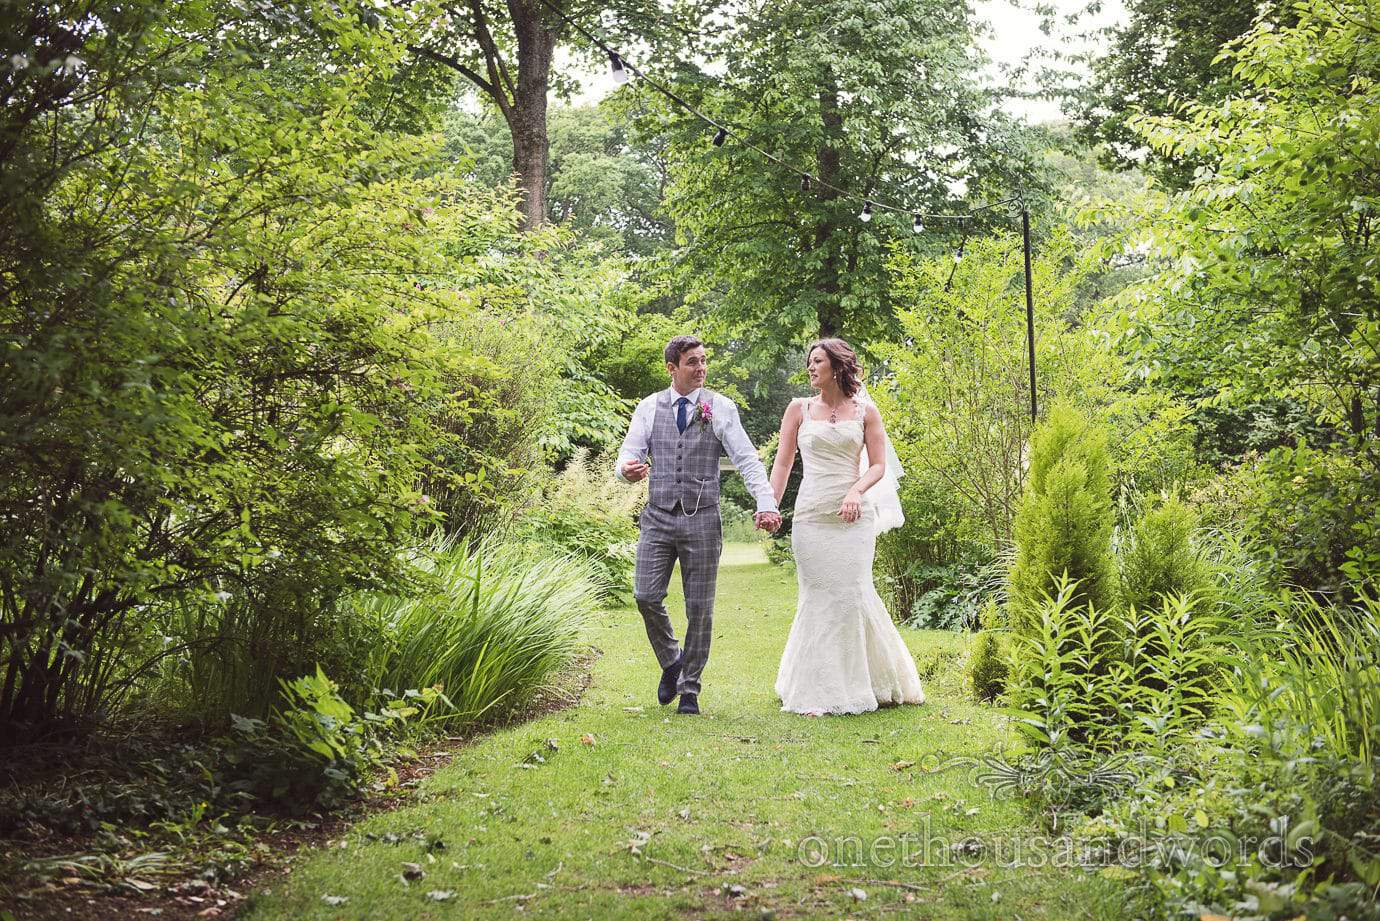 Bride and groom walk through gardens at The Old Vicarage Wedding venue in New Forest